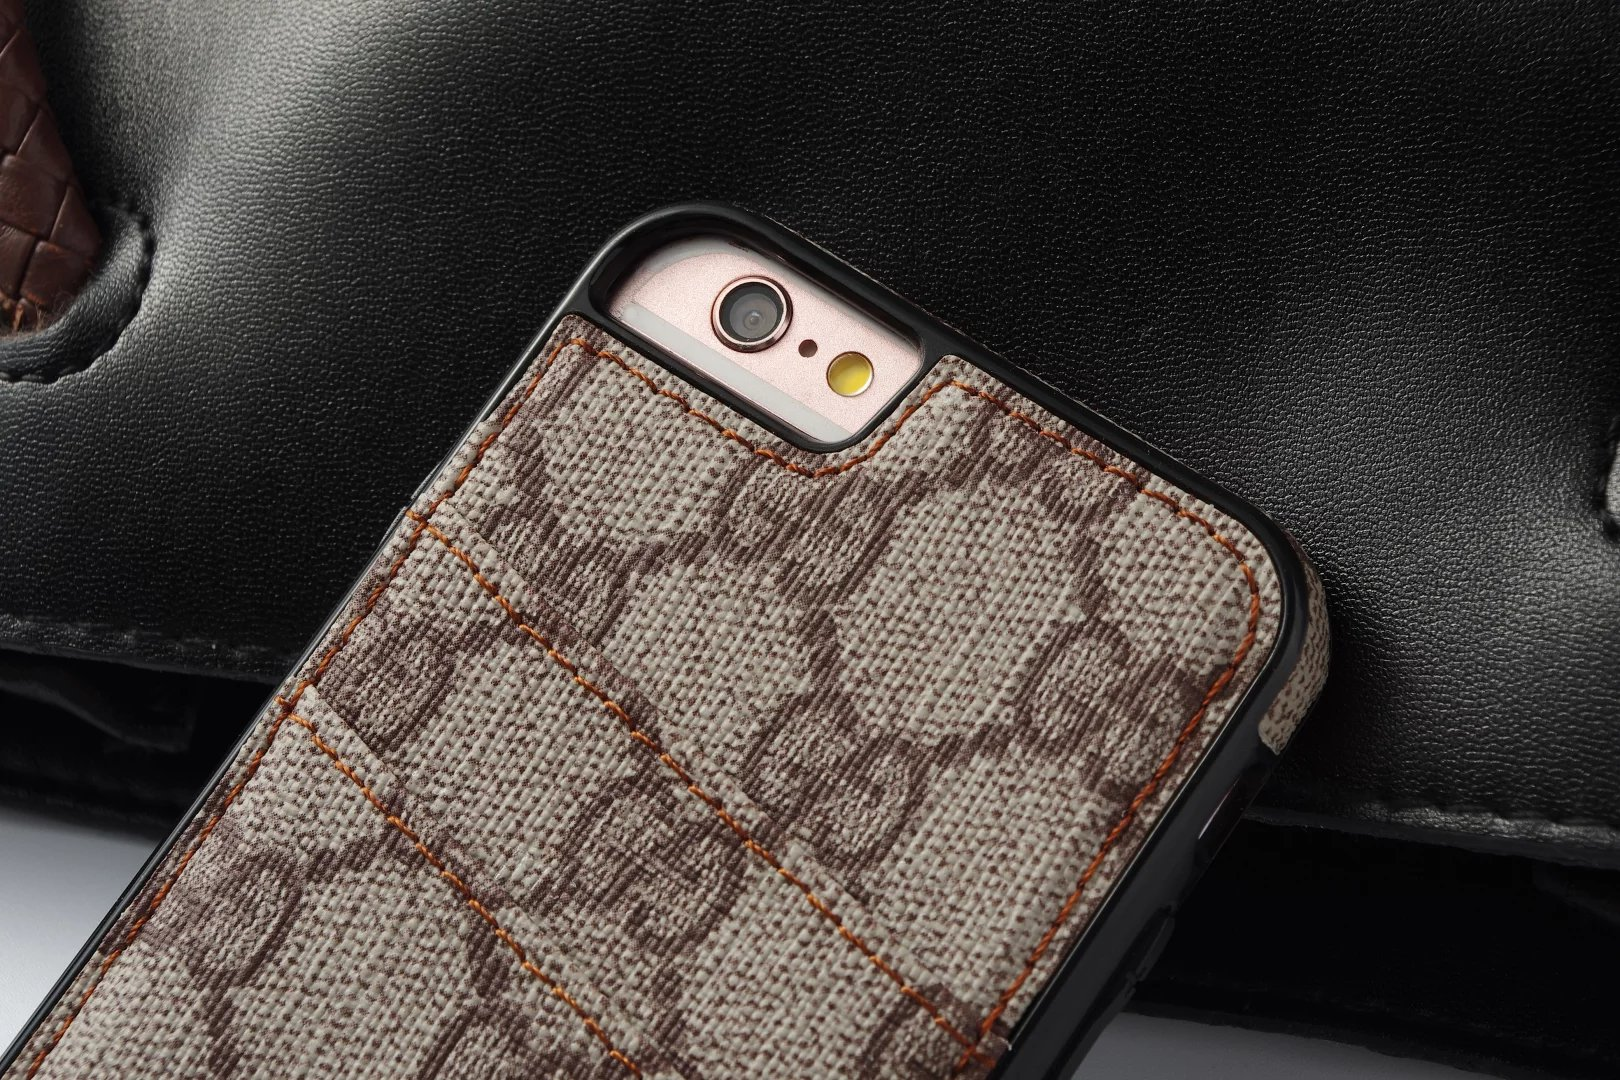 most popular iphone 8 cases iphone 8 case sale Louis Vuitton iphone 8 case cell phone case shop 2000 mah battery iphone 8 wallet case women juice pack juice pluse phone case cover